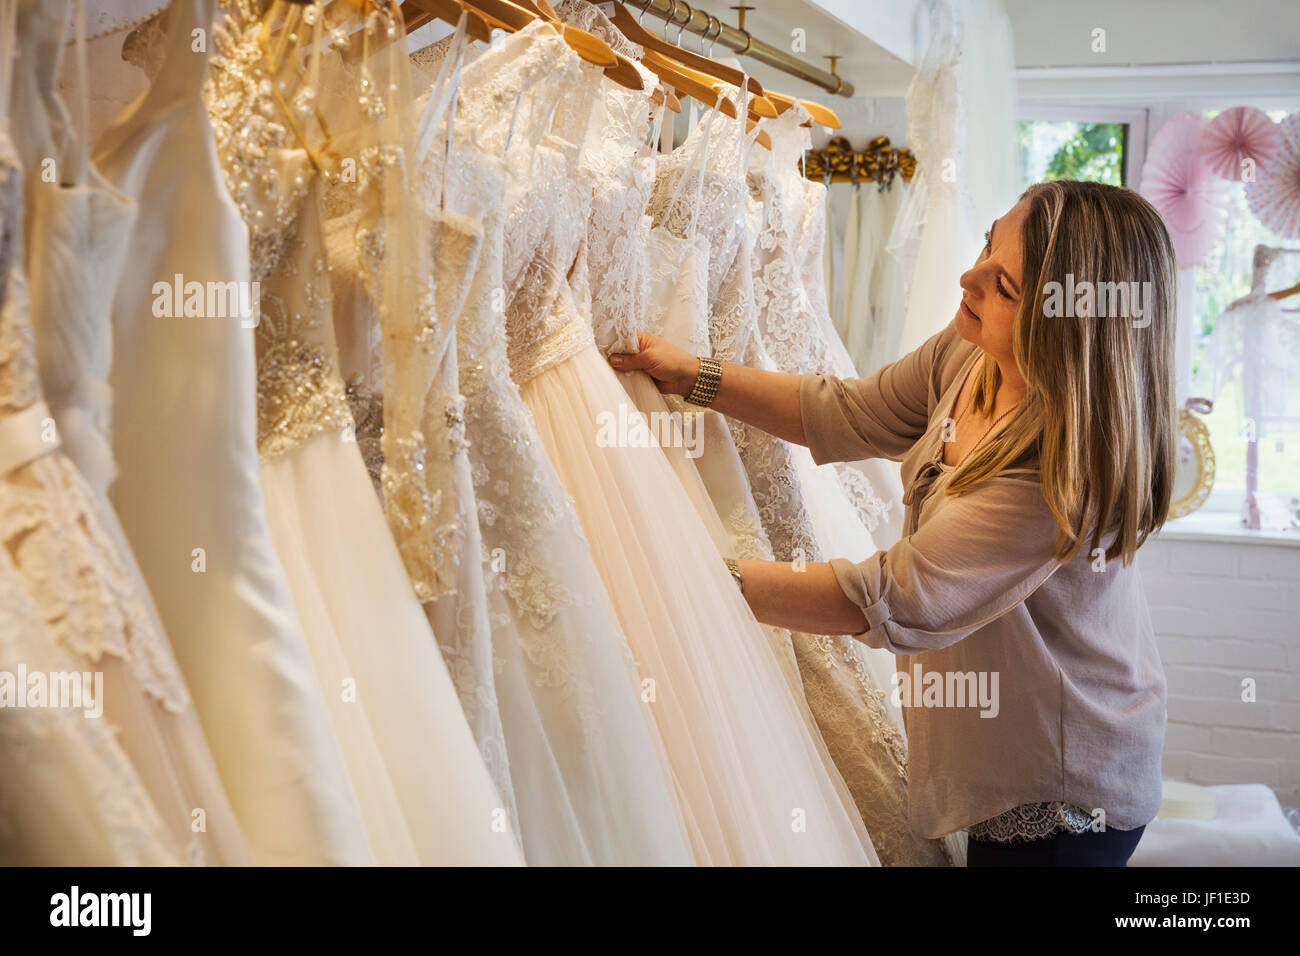 A sales assistant in a wedding dress shop, looking through the gowns hanging in the rails. - Stock Image